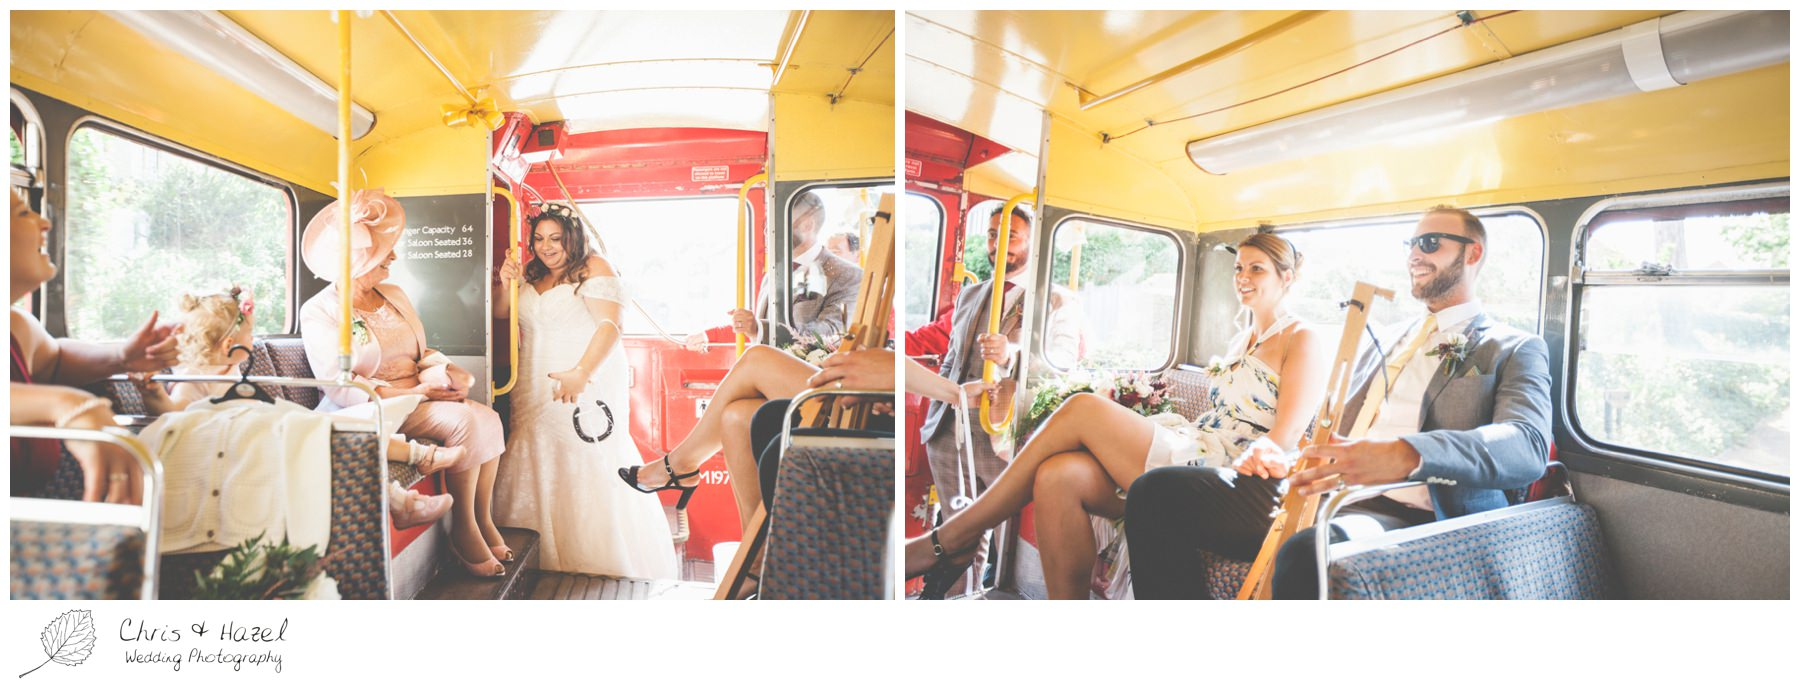 Bride on Wedding Bus, Retro Wedding Bus, London style Wedding Bus, Wedding Photography Trowbridge, Wiltshire Wedding Photographer Trowbridge, Chris and Hazel Wedding Photography